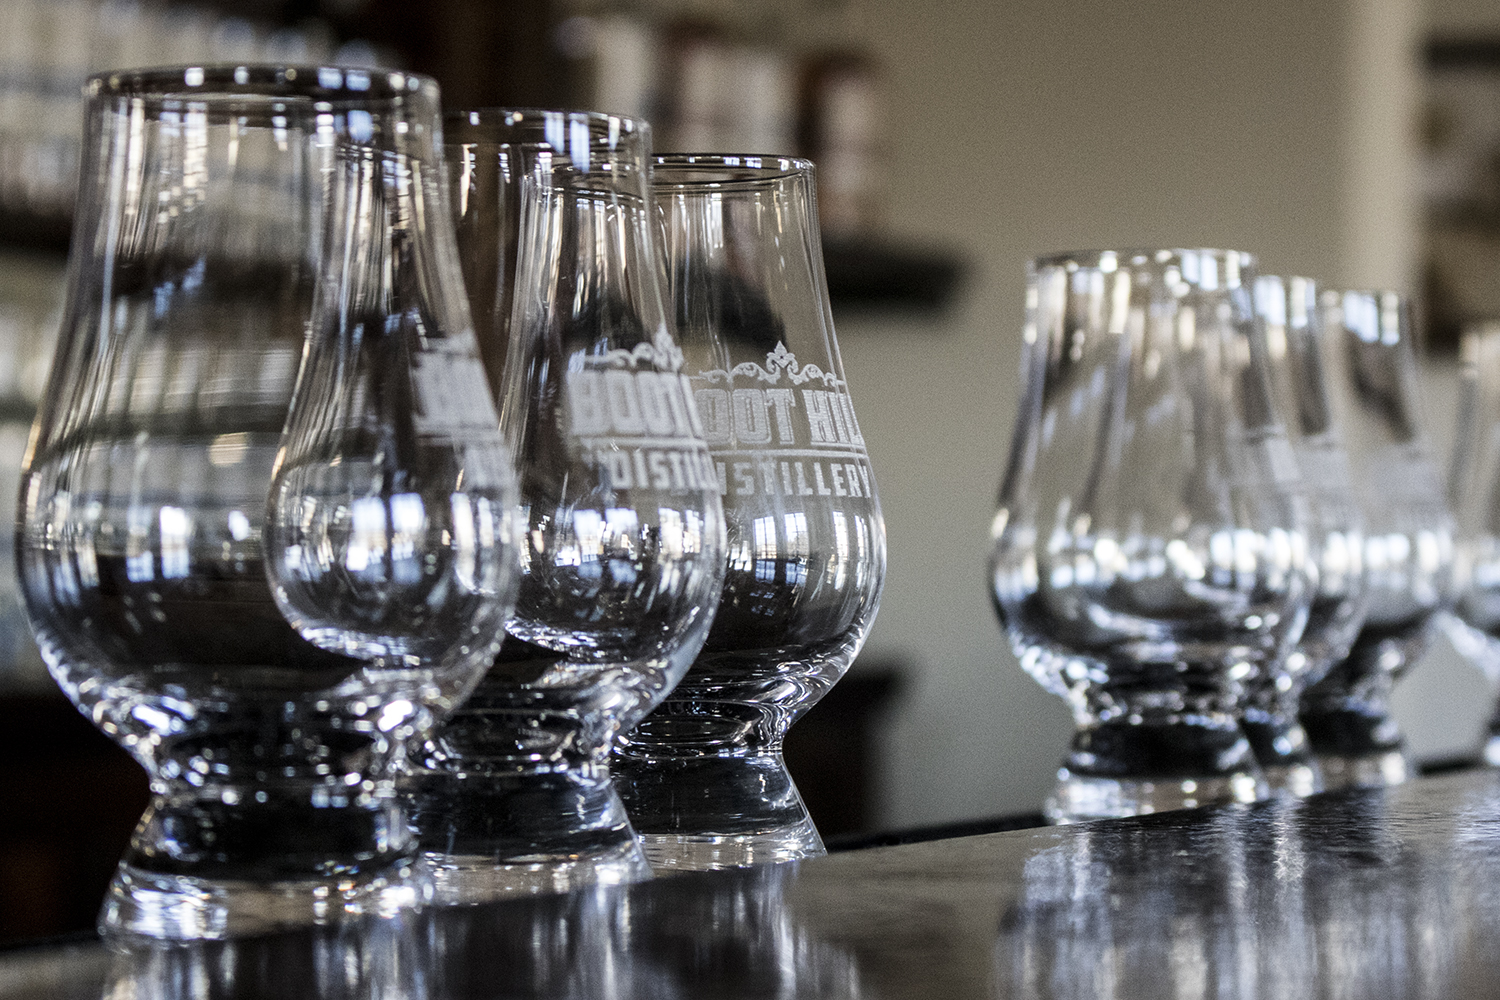 Boot Hill Distillery Tasting Glasses